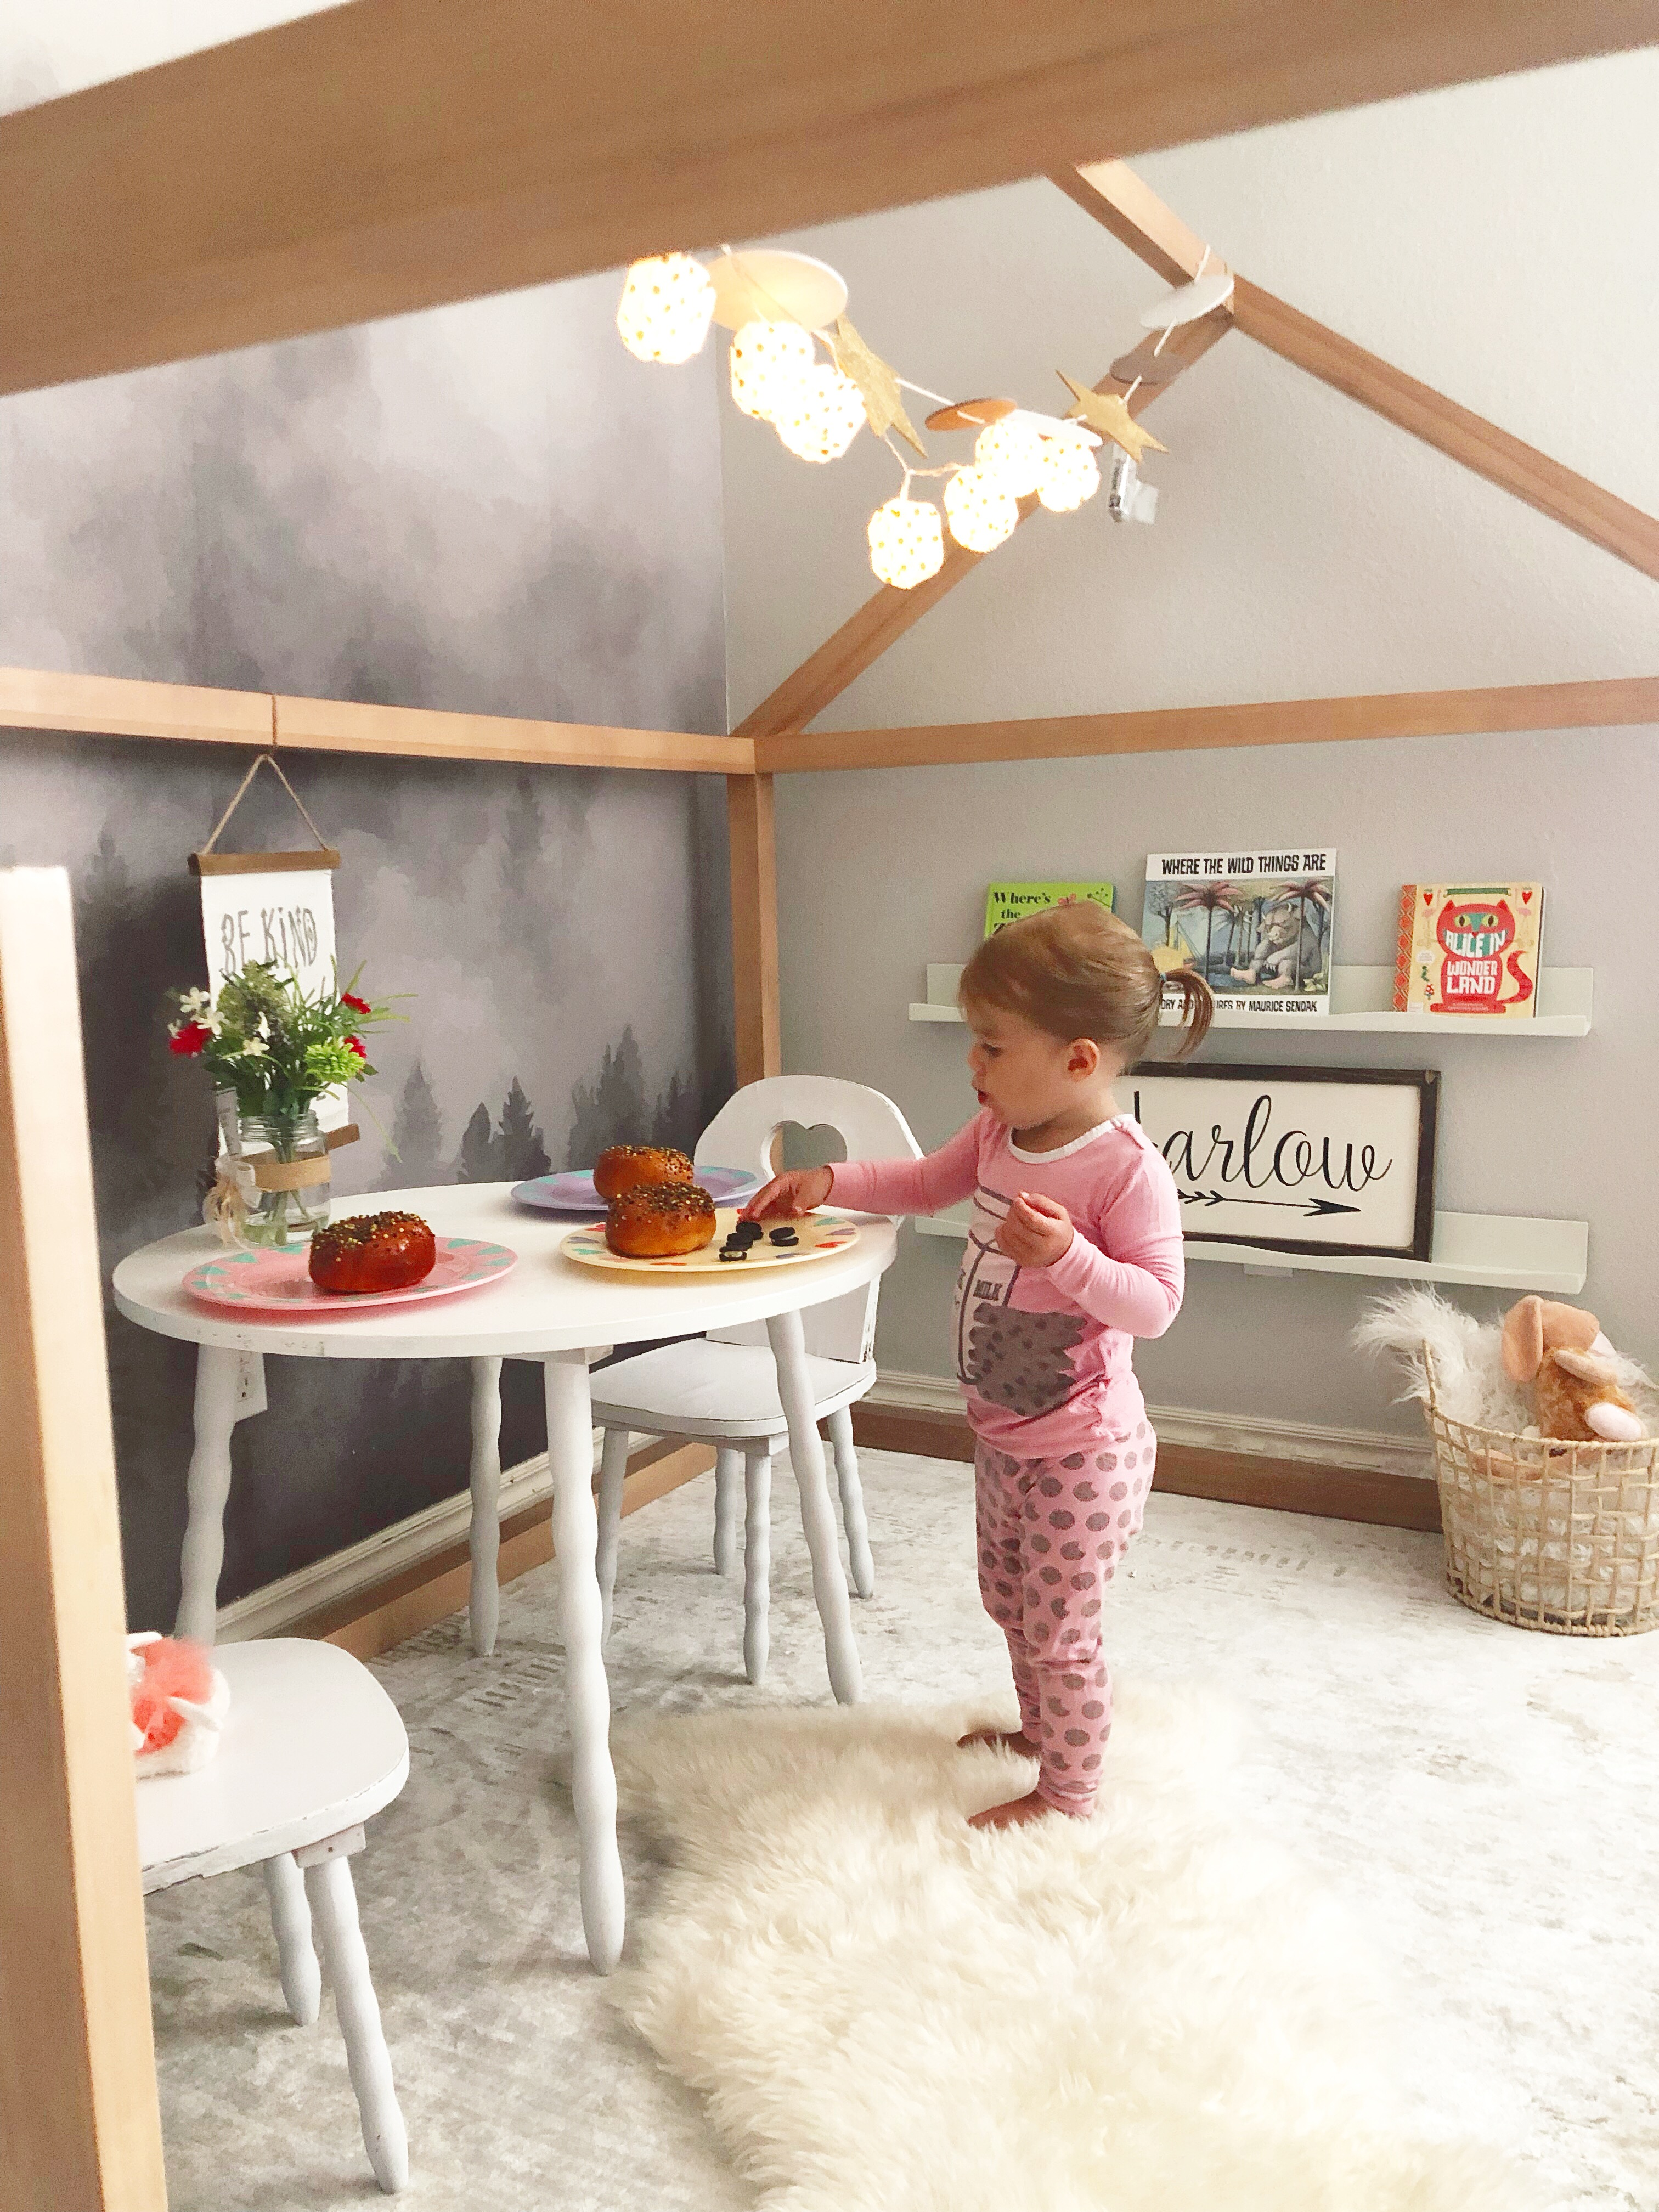 Kid's Playroom Update with Drew Barrymore's Flower Kids